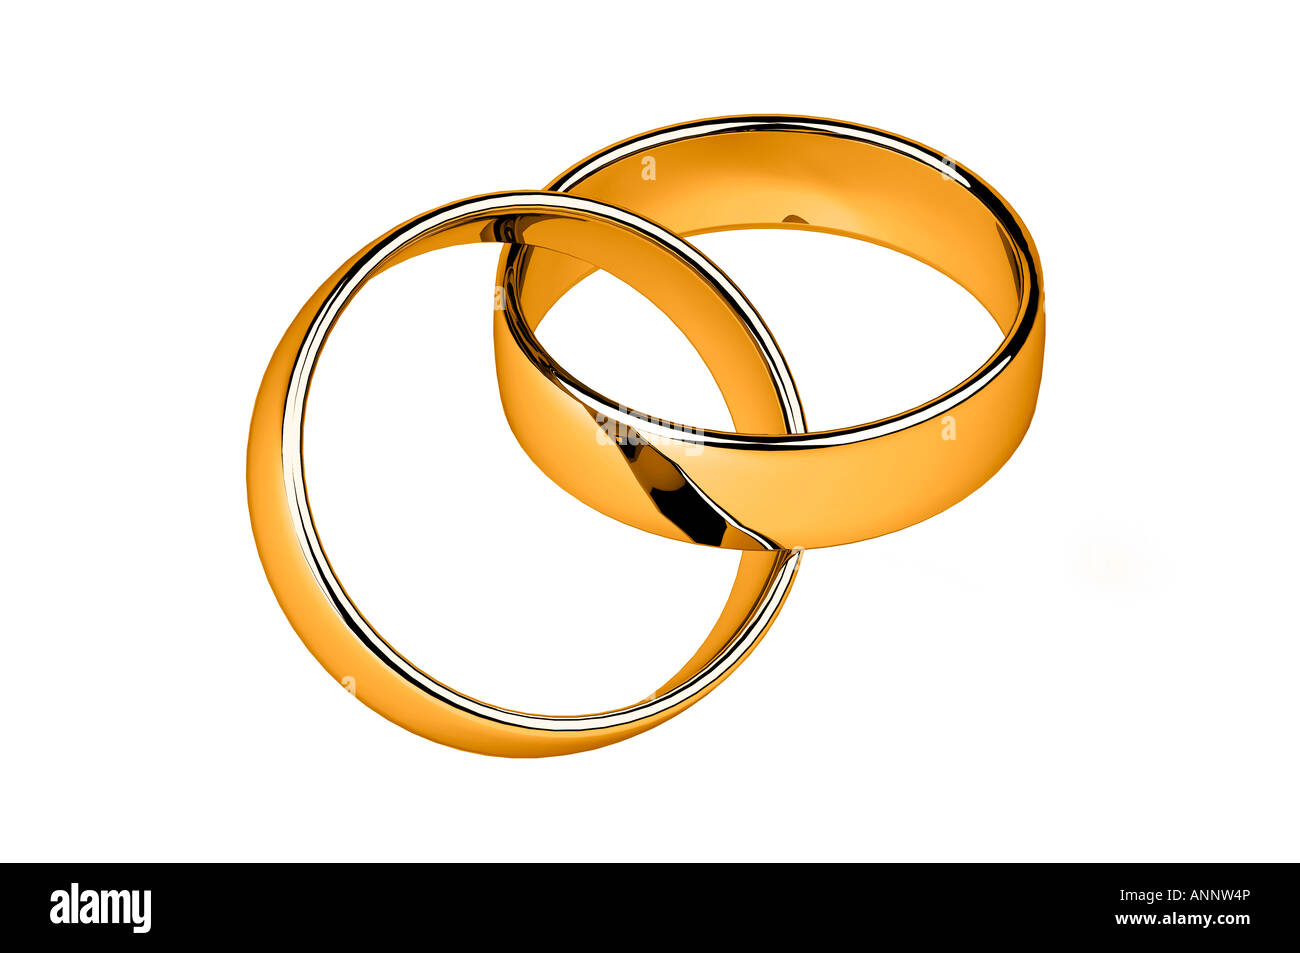 Interlocked gold wedding rings Stock Photo Royalty Free Image